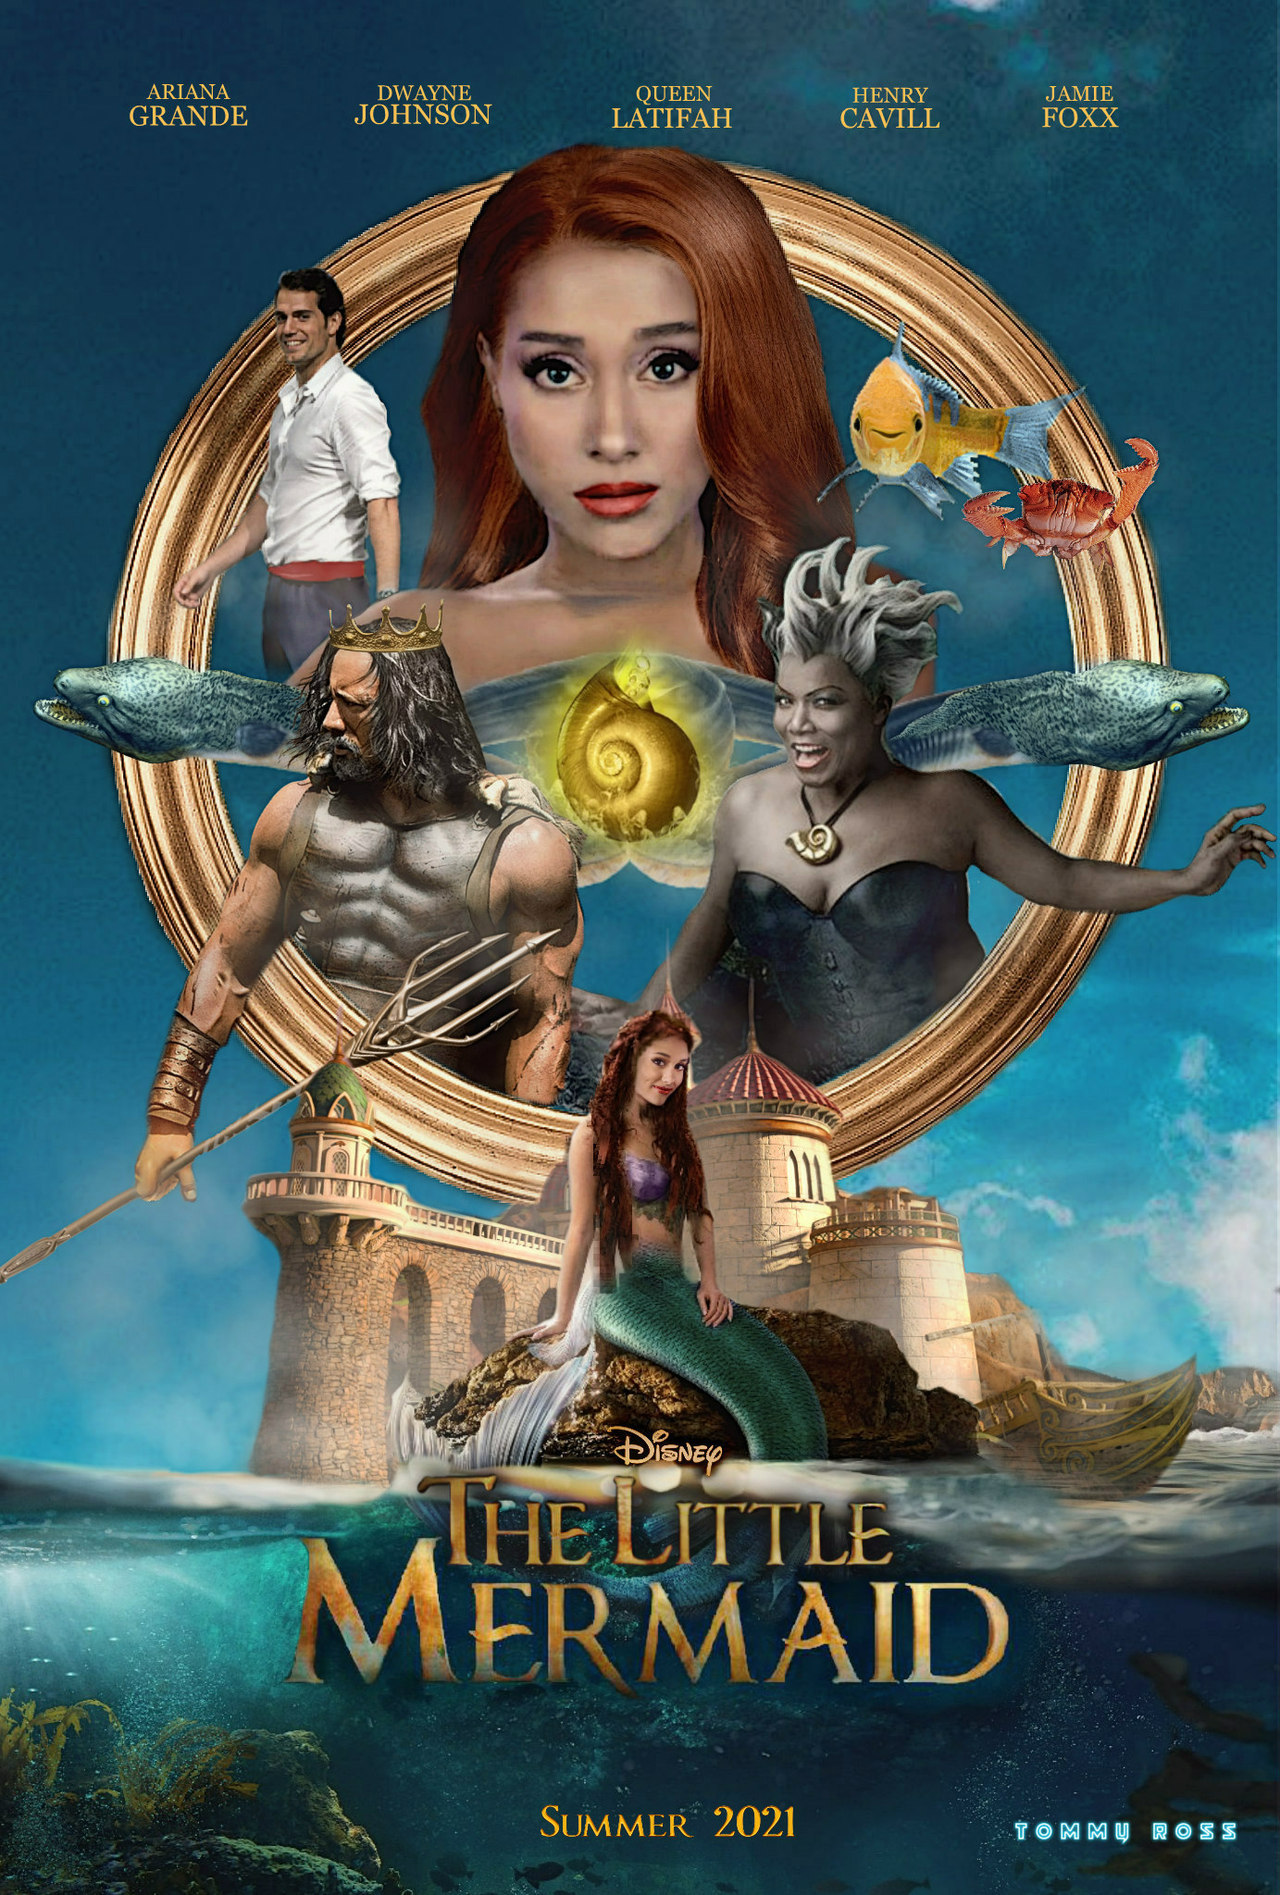 The Little Mermaid (live-action)